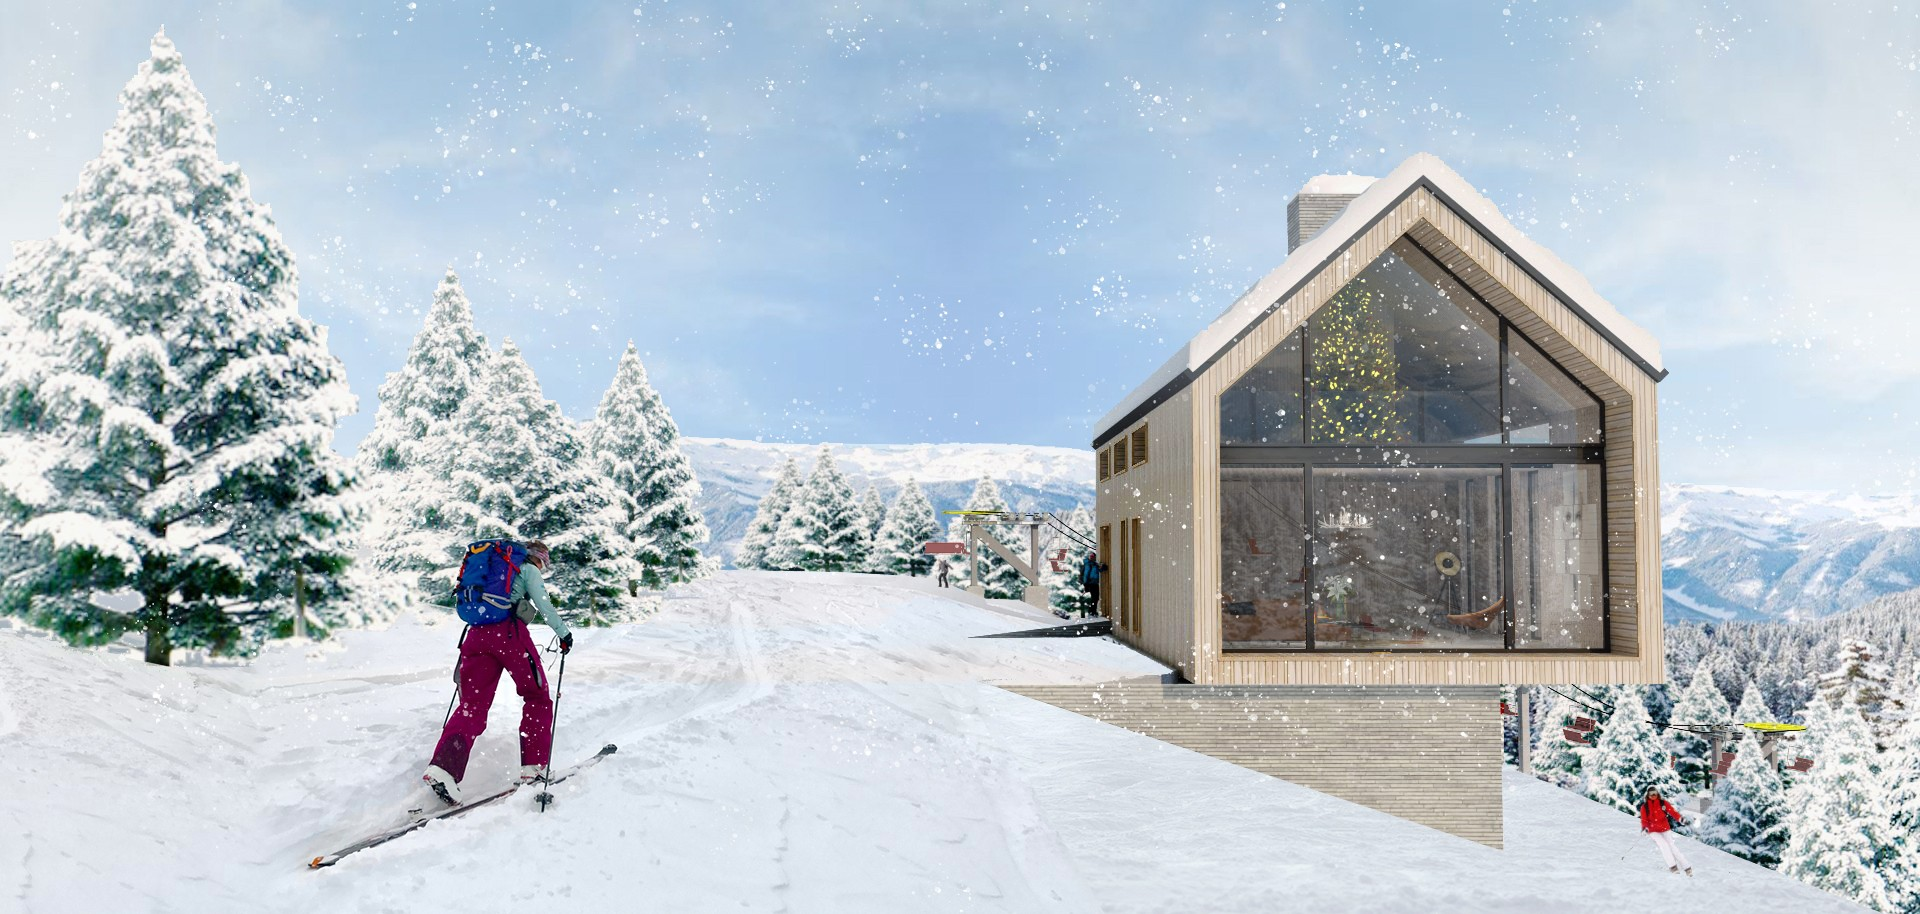 Studio Bloom Ski Scene 2018 exterior 2.jpg